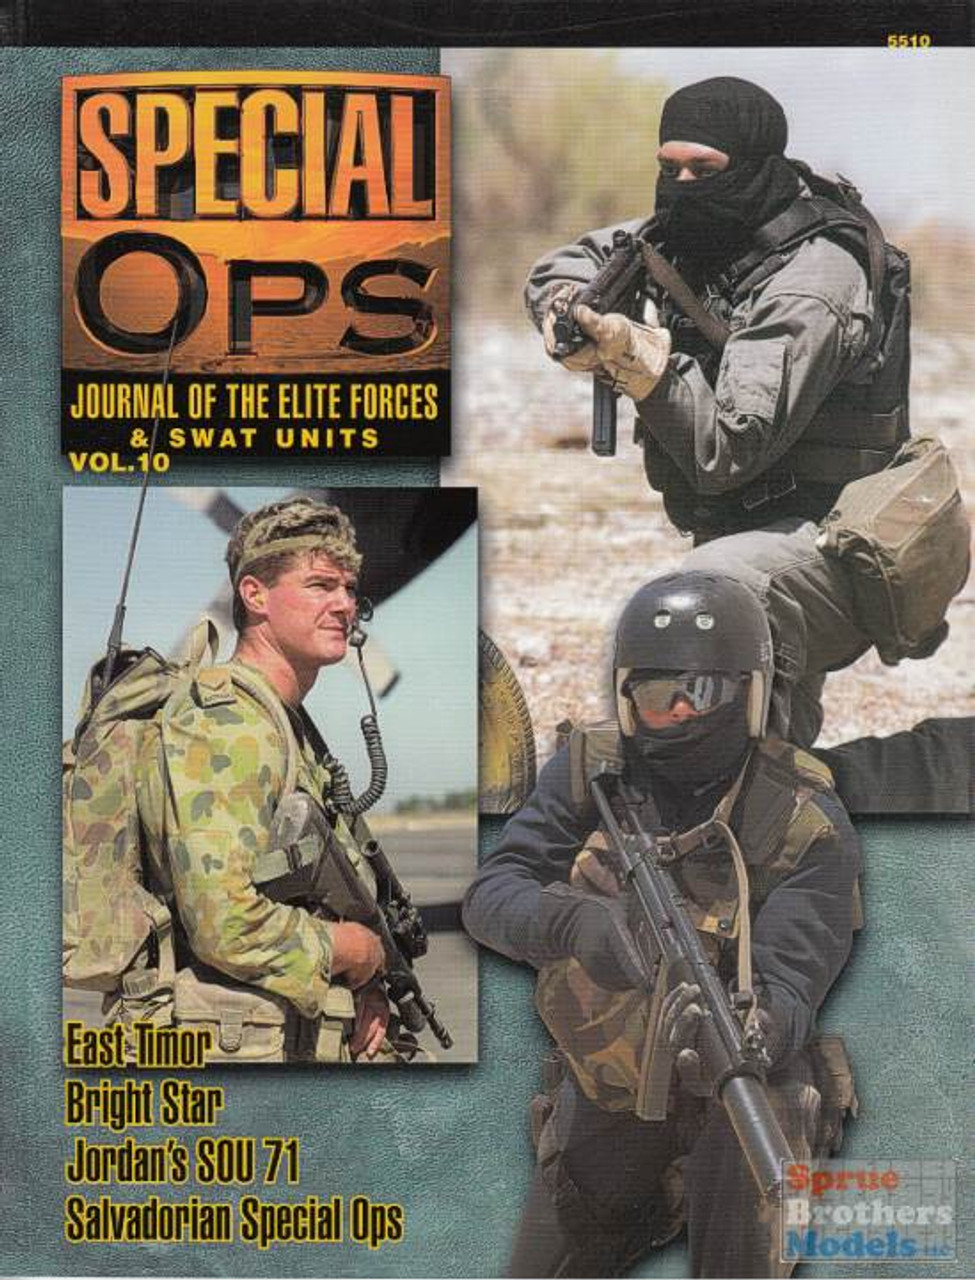 CCD5510 Concord Publications - Special Ops Volume #10